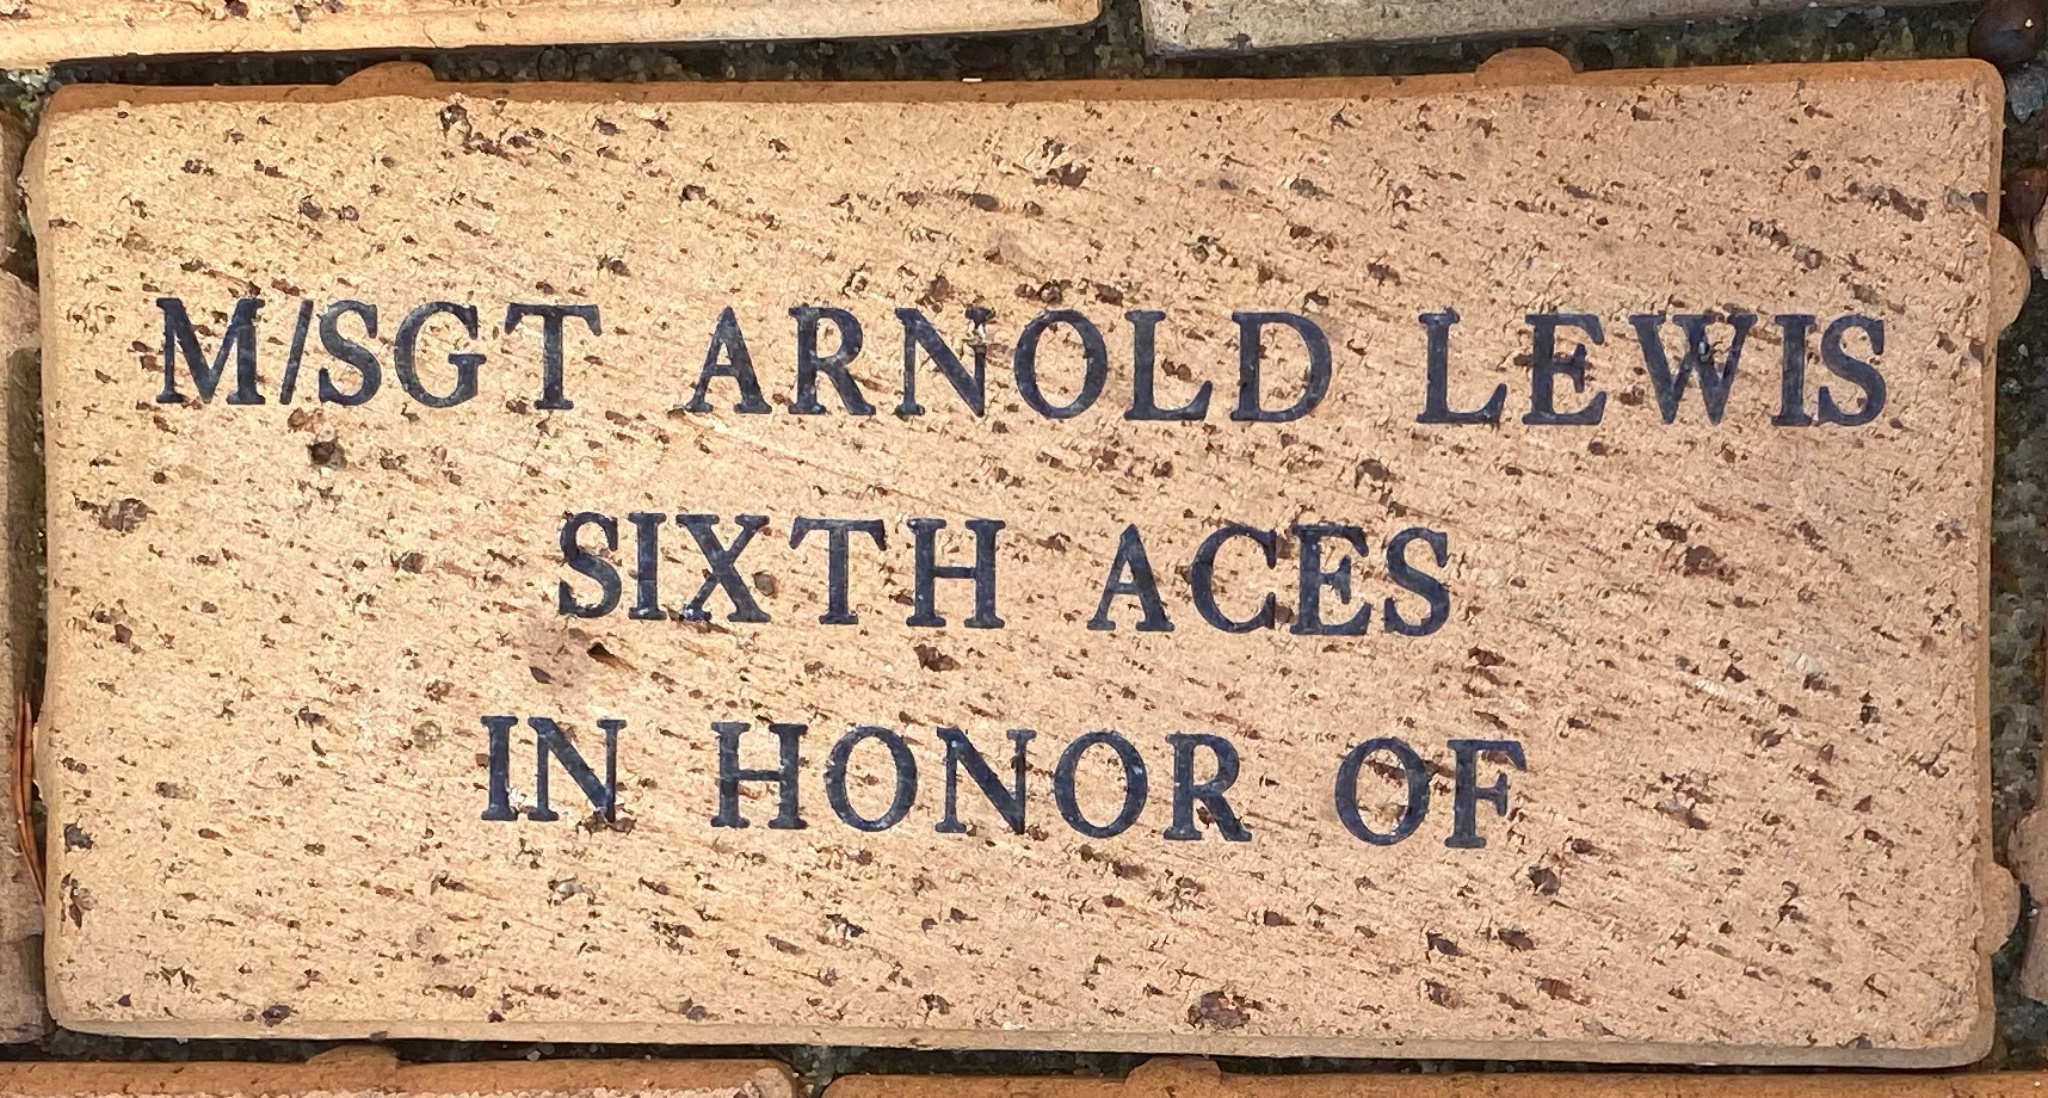 M/SGT ARNOLD LEWIS SIXTH ACES IN HONOR OF